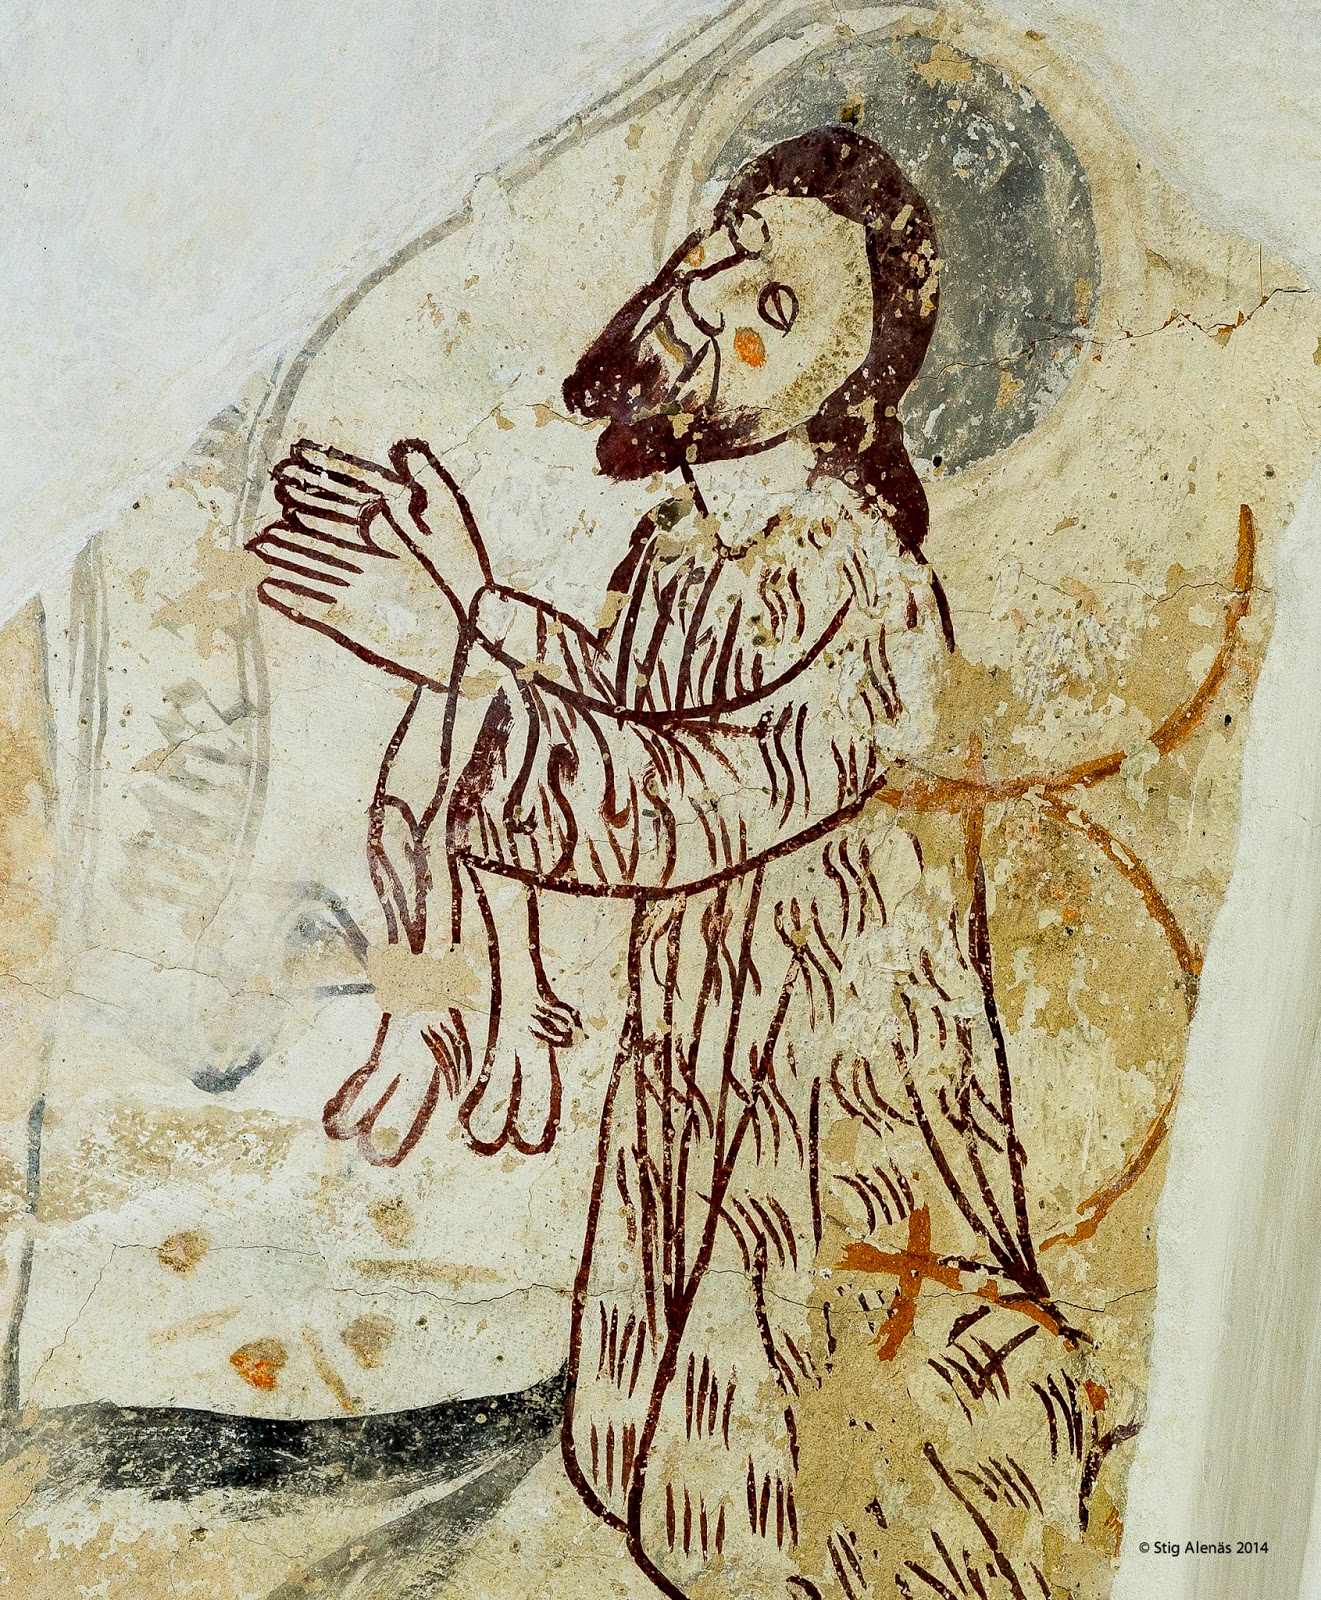 kneeling, john, middle, guide, halo, editorial, sweden, church, ages, baptist, hair, fresco, camel, toe, camel skins, john the baptist, ilstorp. https://www.shutterstock.com/image-photo/john-baptist-clothes-made-camel-skin-483866053